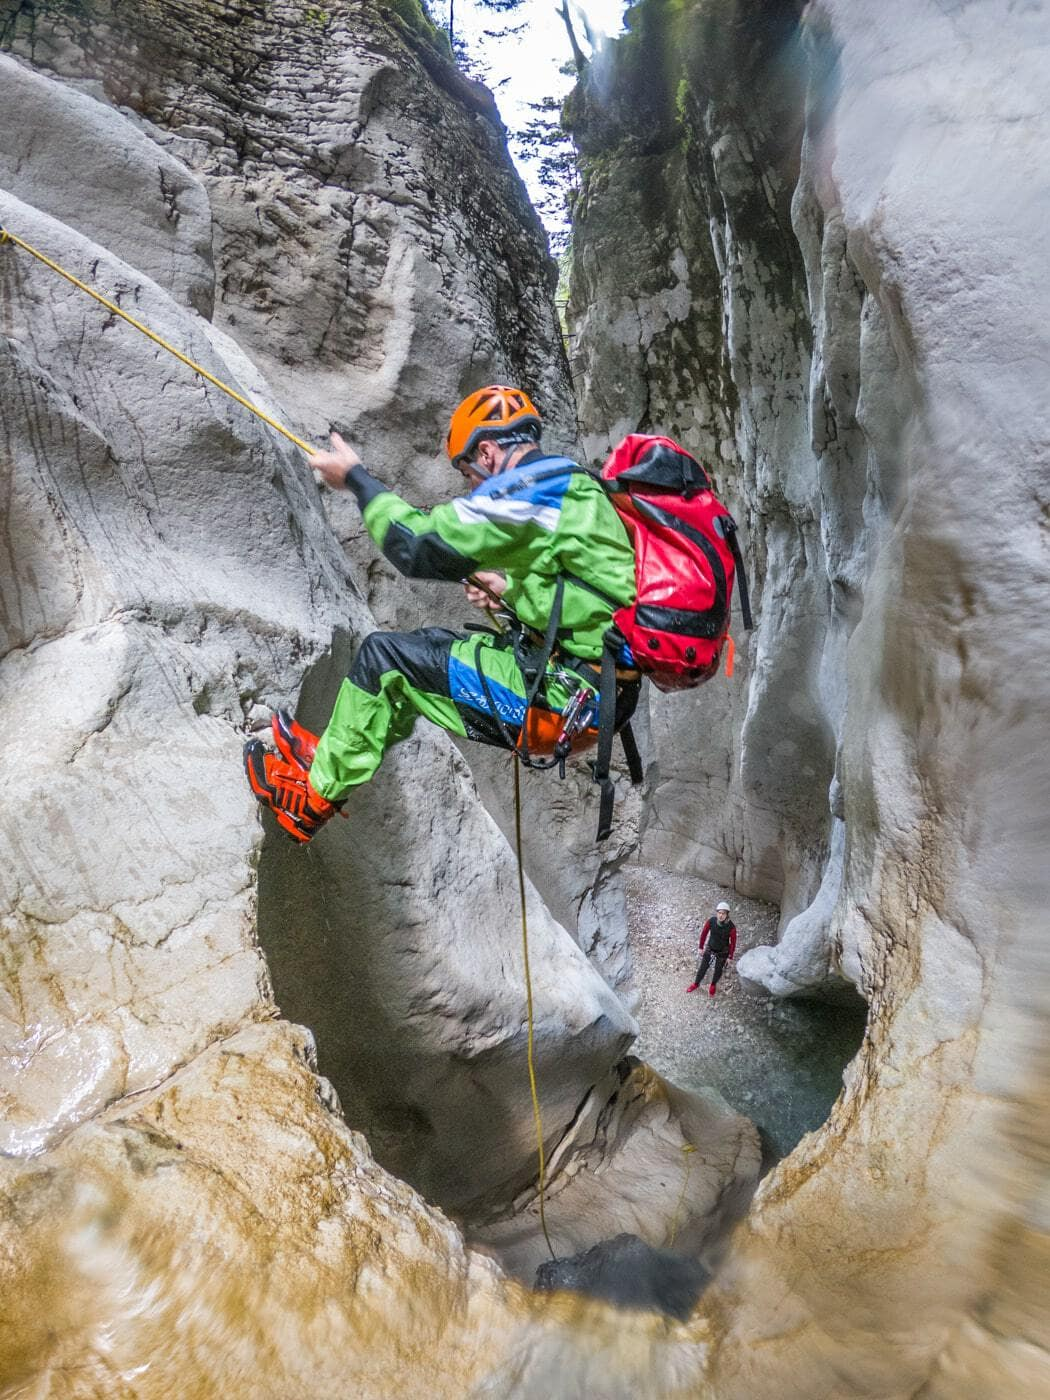 a guide hanging off a ledge while canyoning in val noana trentino